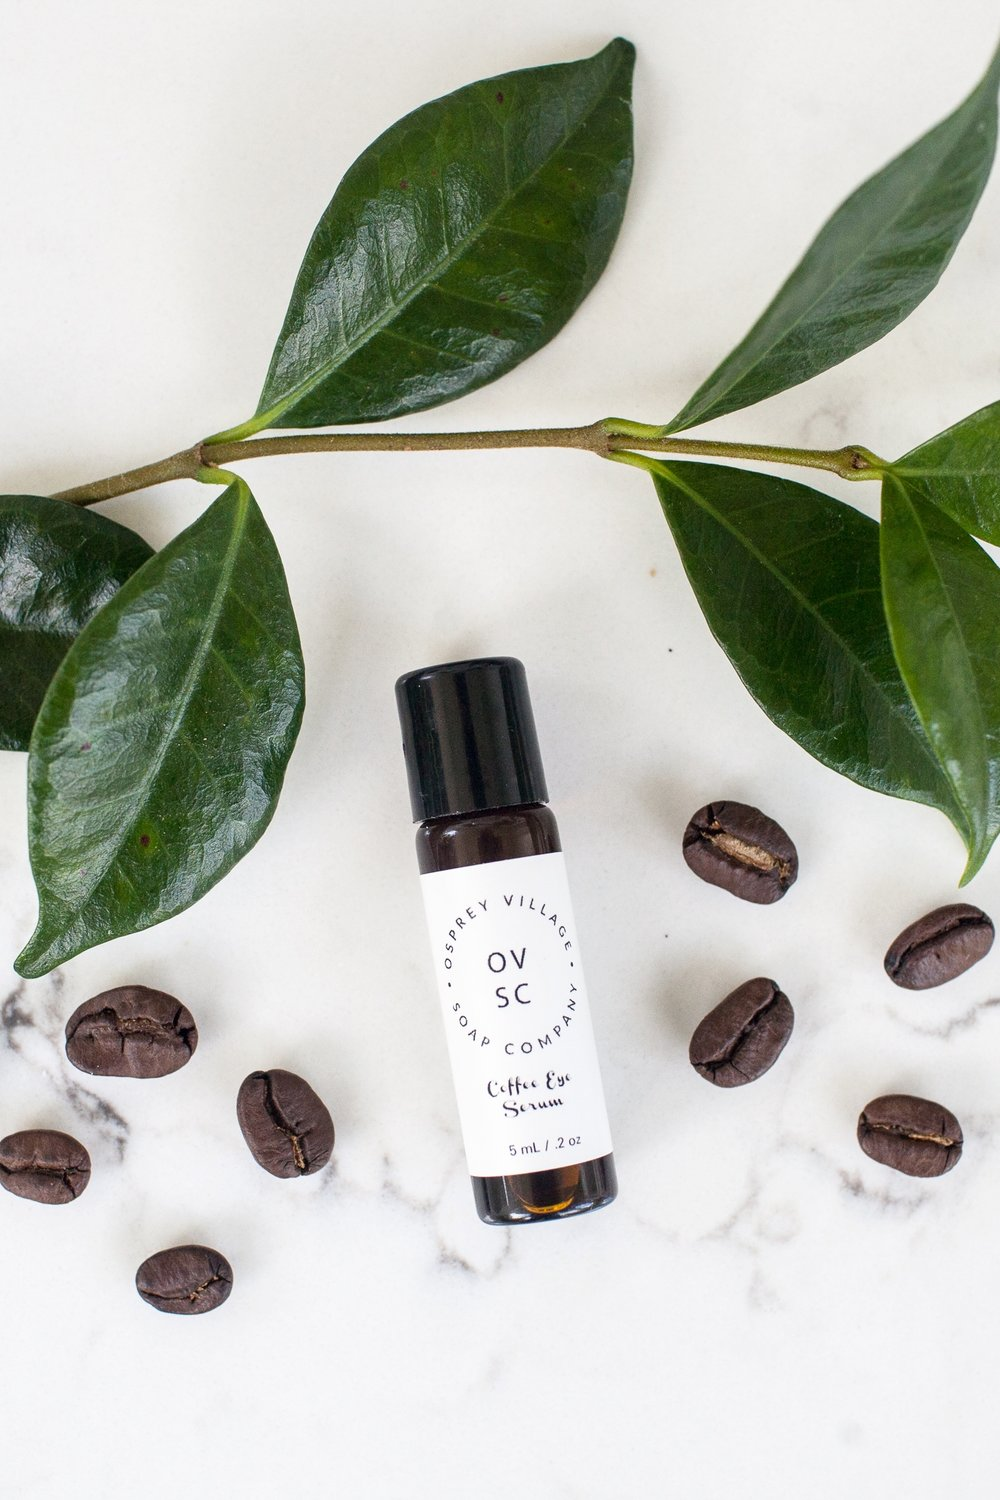 Coffee Eye Serum - by Osprey Village Soap Company Say goodbye to dark circles and puffy eyes! This Coffee Eye Serum is an infused oil that lightens under-eye circles while removing puffiness. Coffee works wonders for our skin.  The caffeine helps tighten fine lines (like the ones around our delicate eye area), and reduces puffiness by preventing blood flow to the area. The stimulating properties of coffee also brightens your skin.. Combined with super-oil rosehip, vitamin E oil and scented with luxurious neroli essential oil which helps regenerate skill cells and improves the skin's elasticity.Gently roll under your eyes before bed and in the morning after washing your face. Our glass vial includes a metal roller ball for a cooling application that further reduces puffiness.  Osprey Village Soap Company never uses fillers or unnecessary additives so a little goes a long ways!Click HERE to shop online!Click HERE to find stockists!